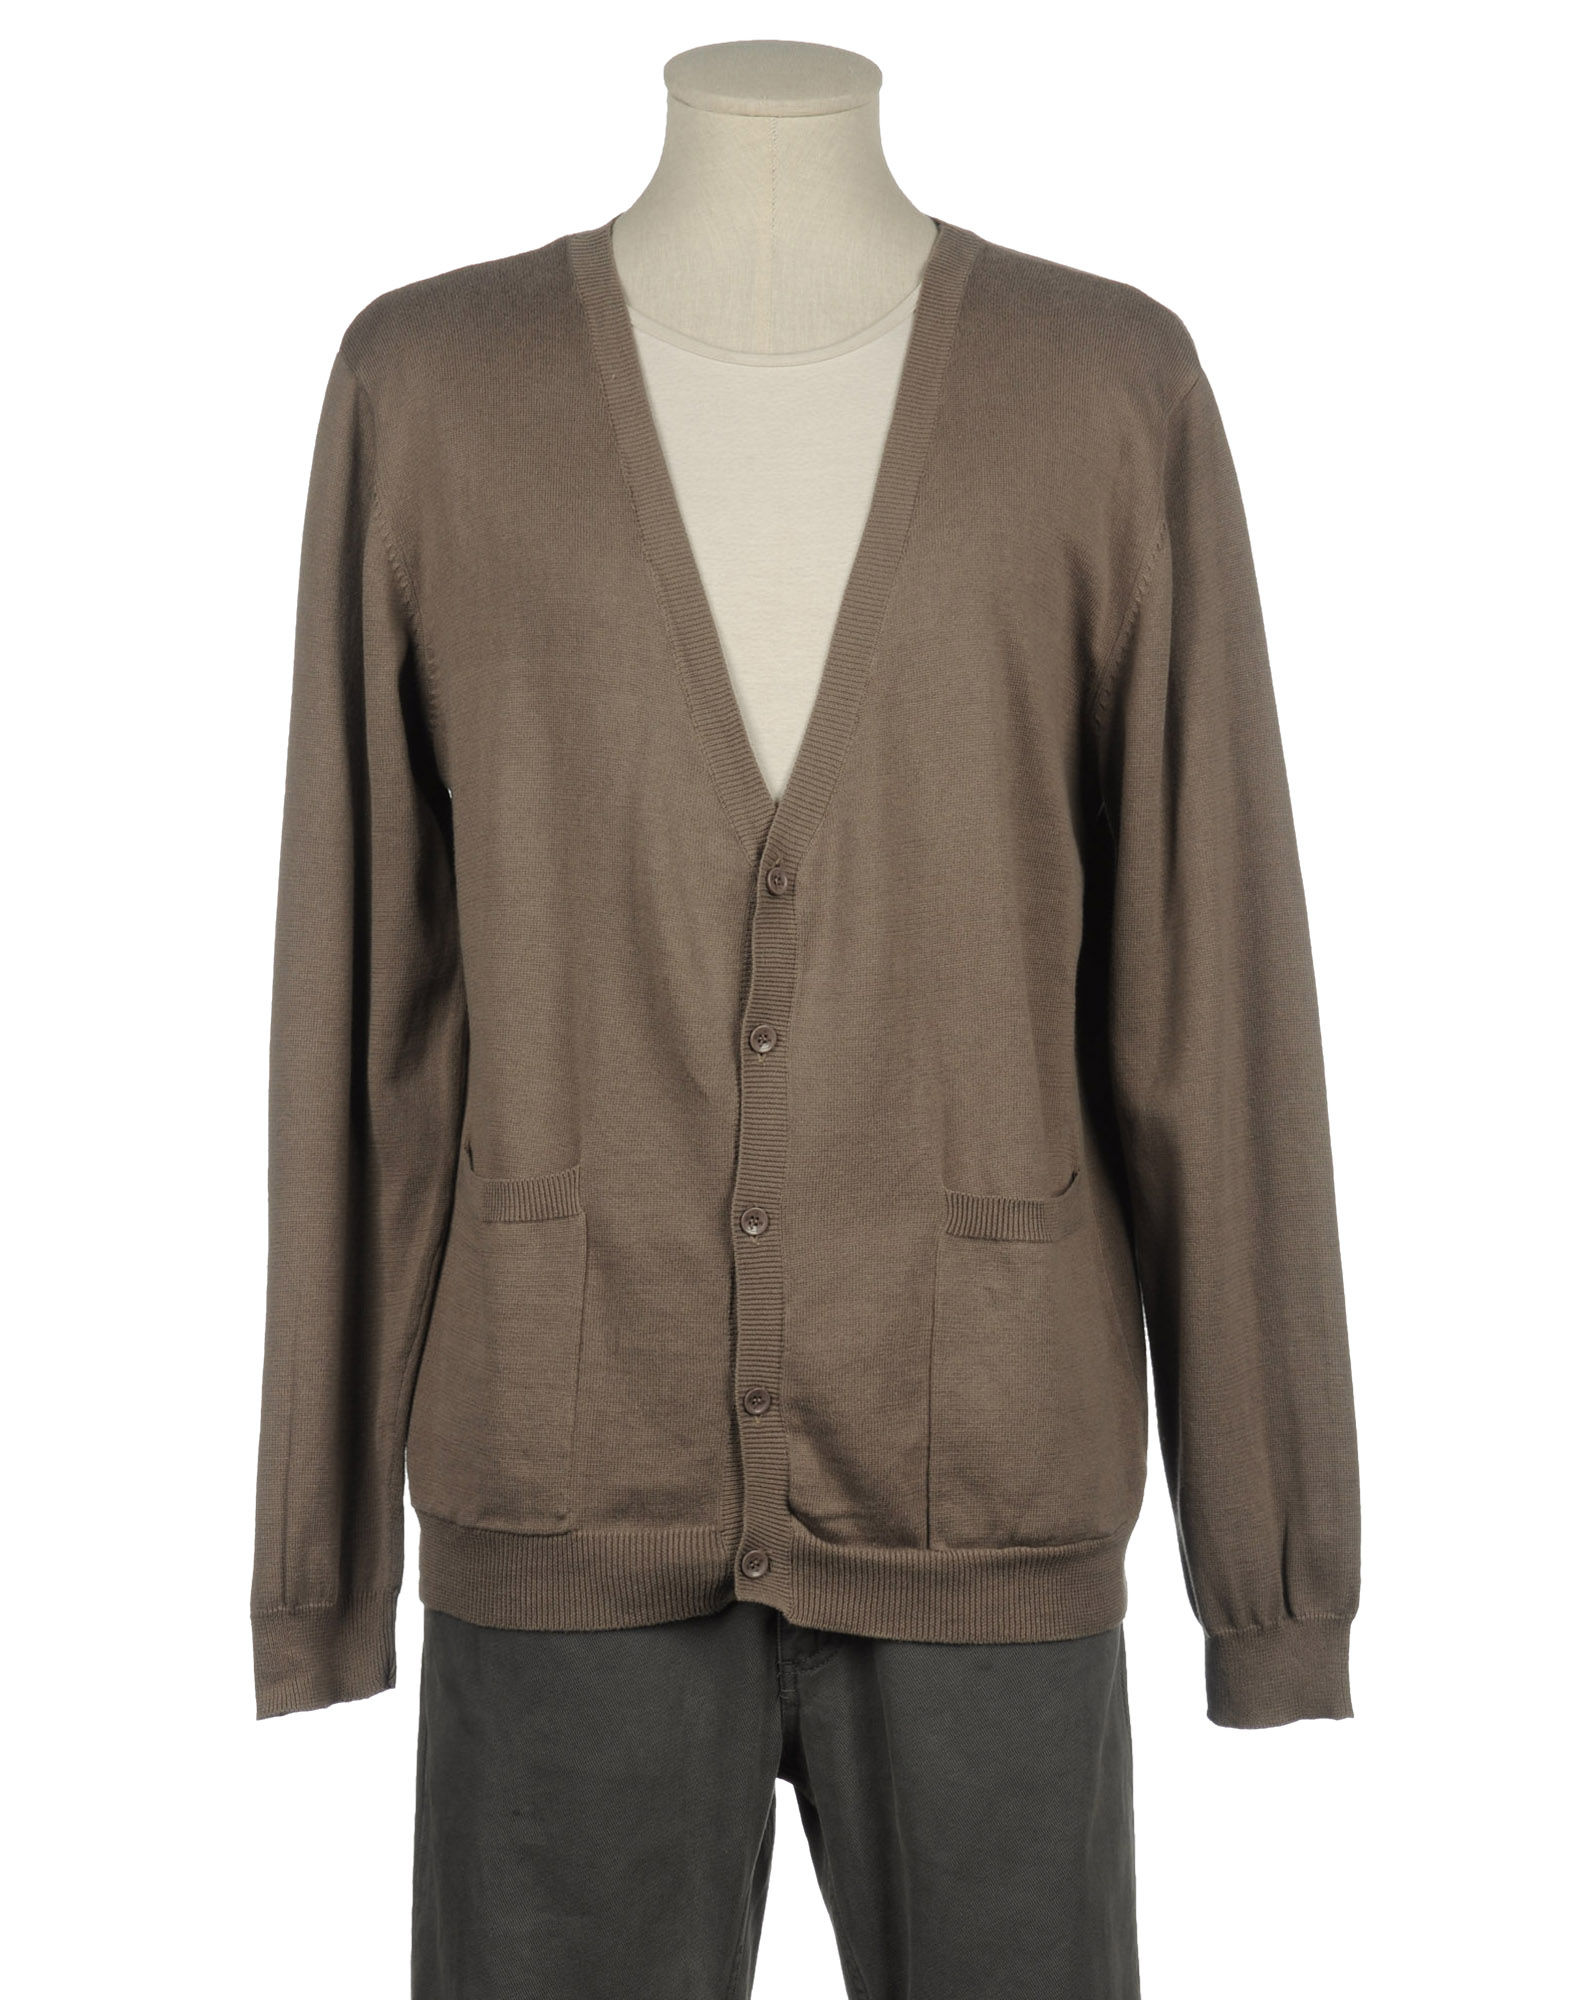 Sweater and cardigans. Sweater and cardigans for men can be really fashionable and can help you to achieve a sophisticated, classy, bohemian or smart look!